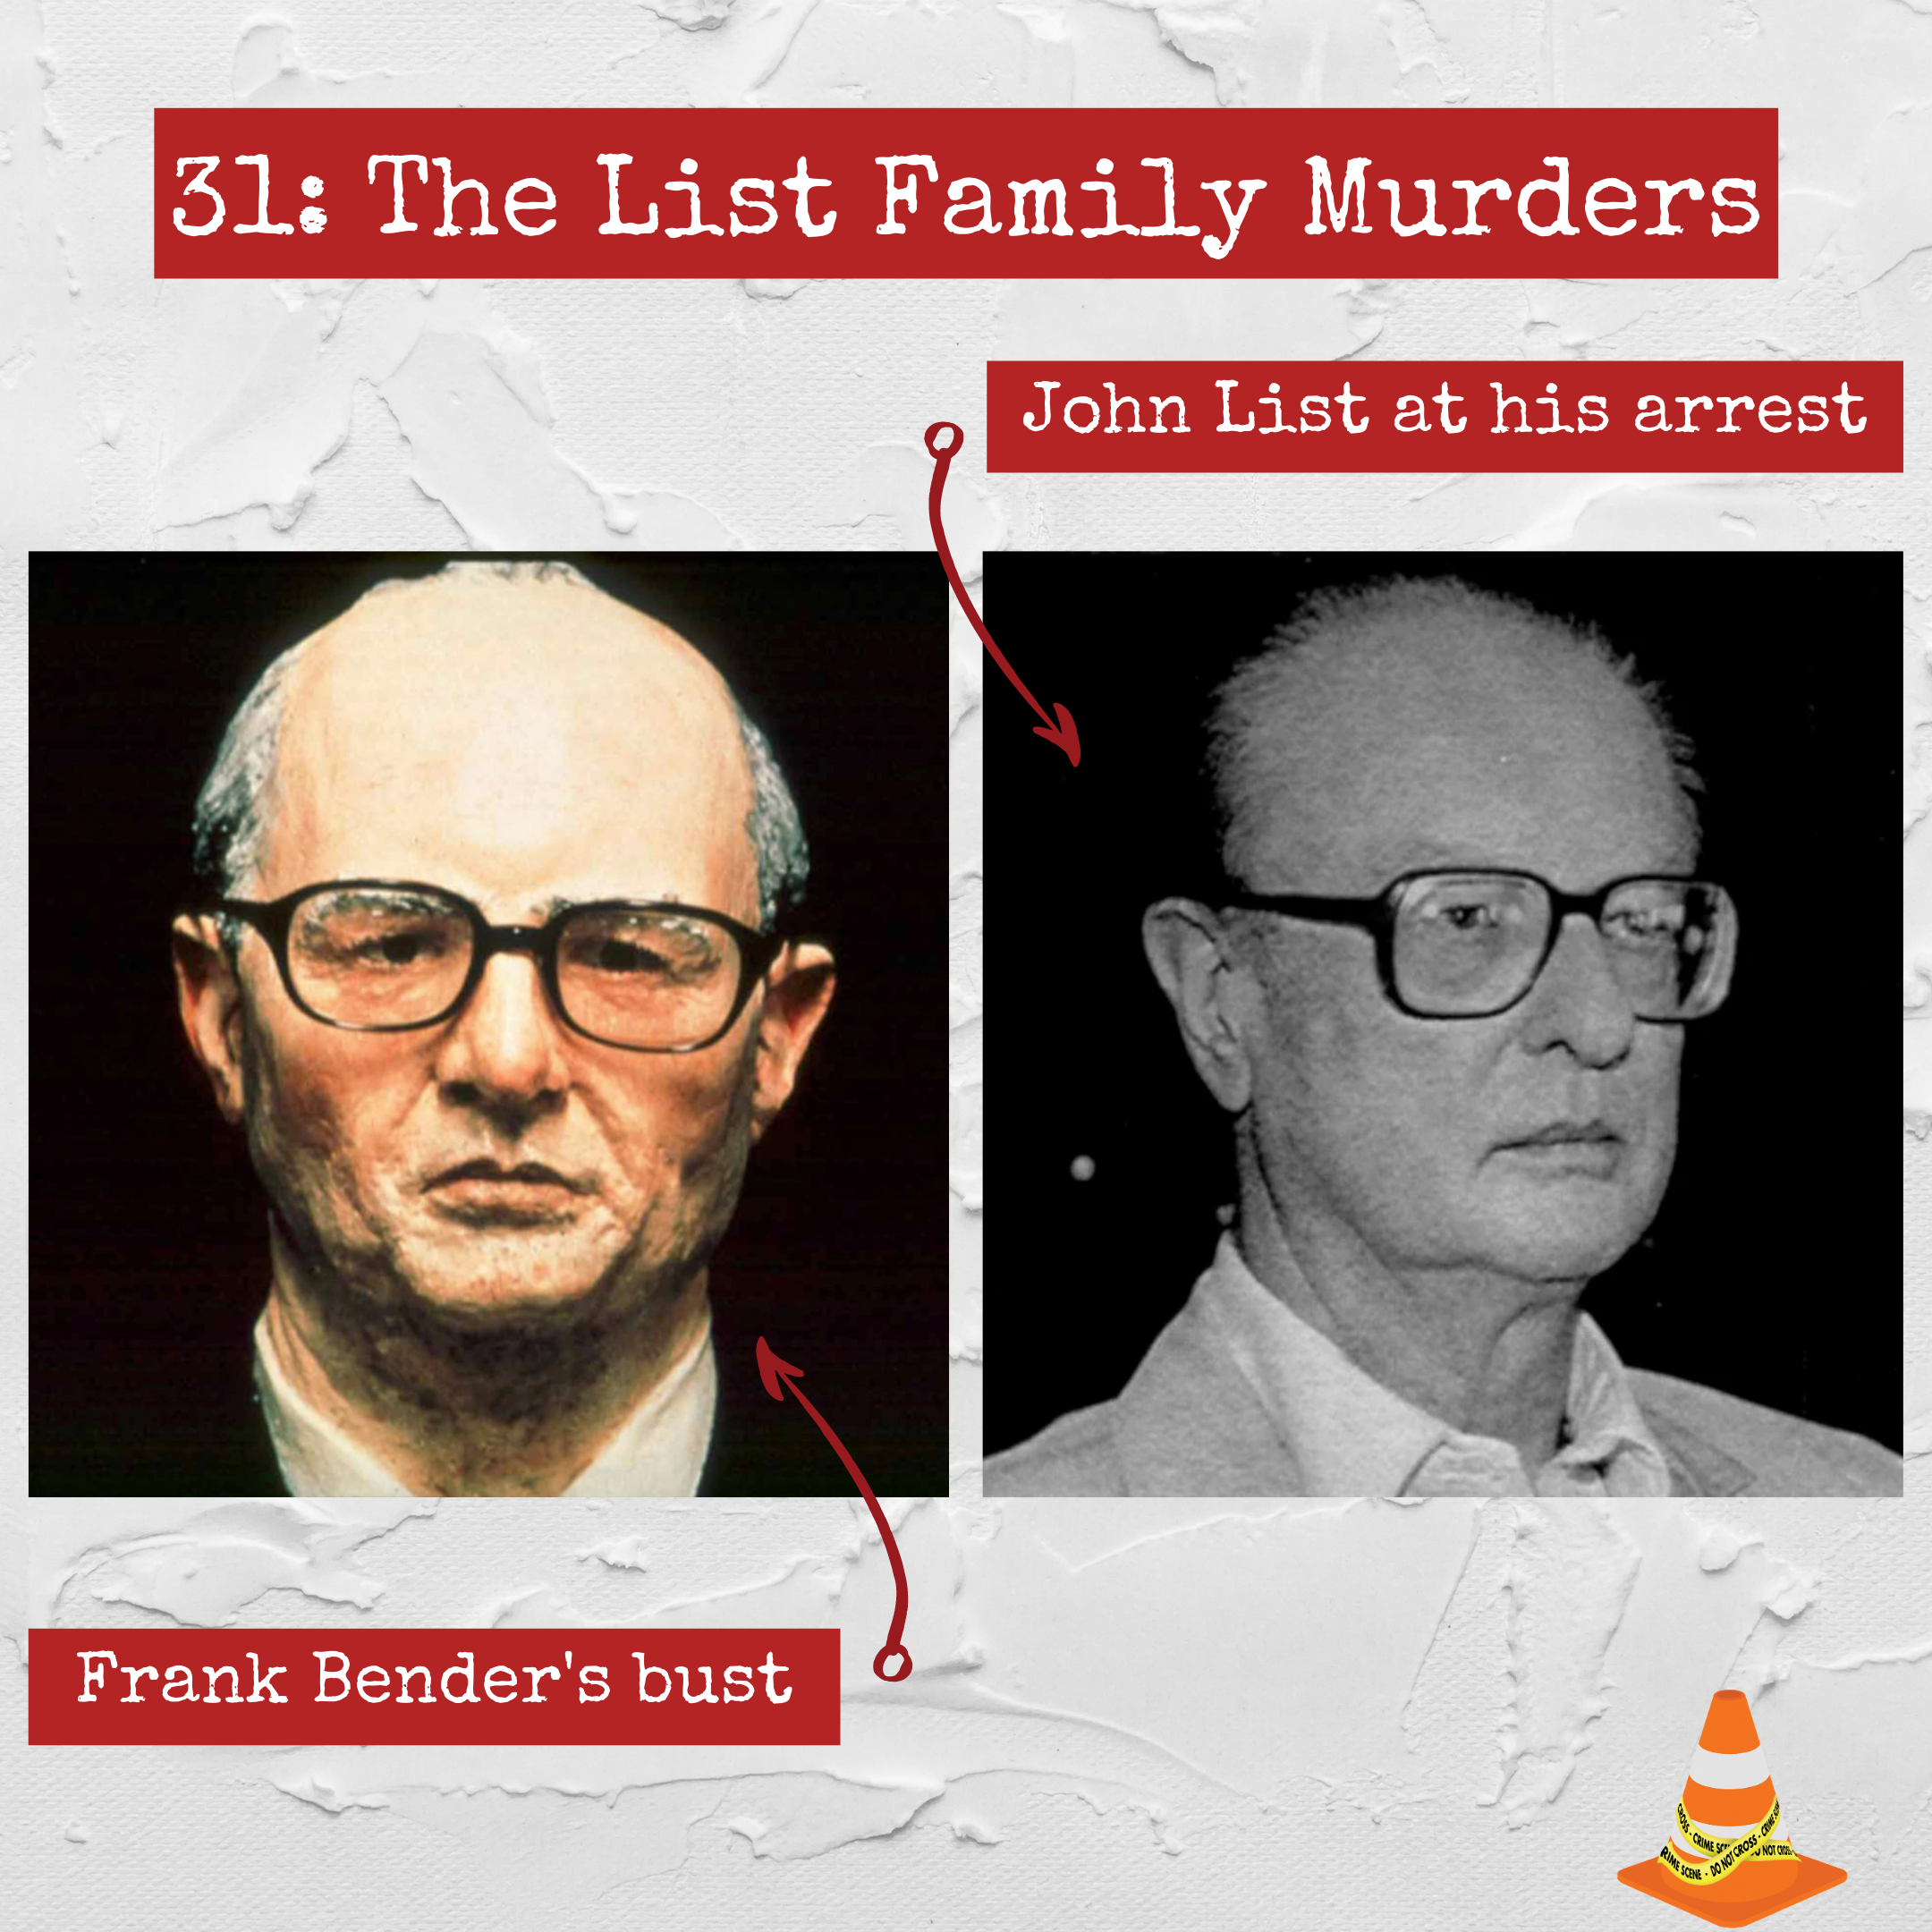 31: The List Family Murders - Square Mile of Murder